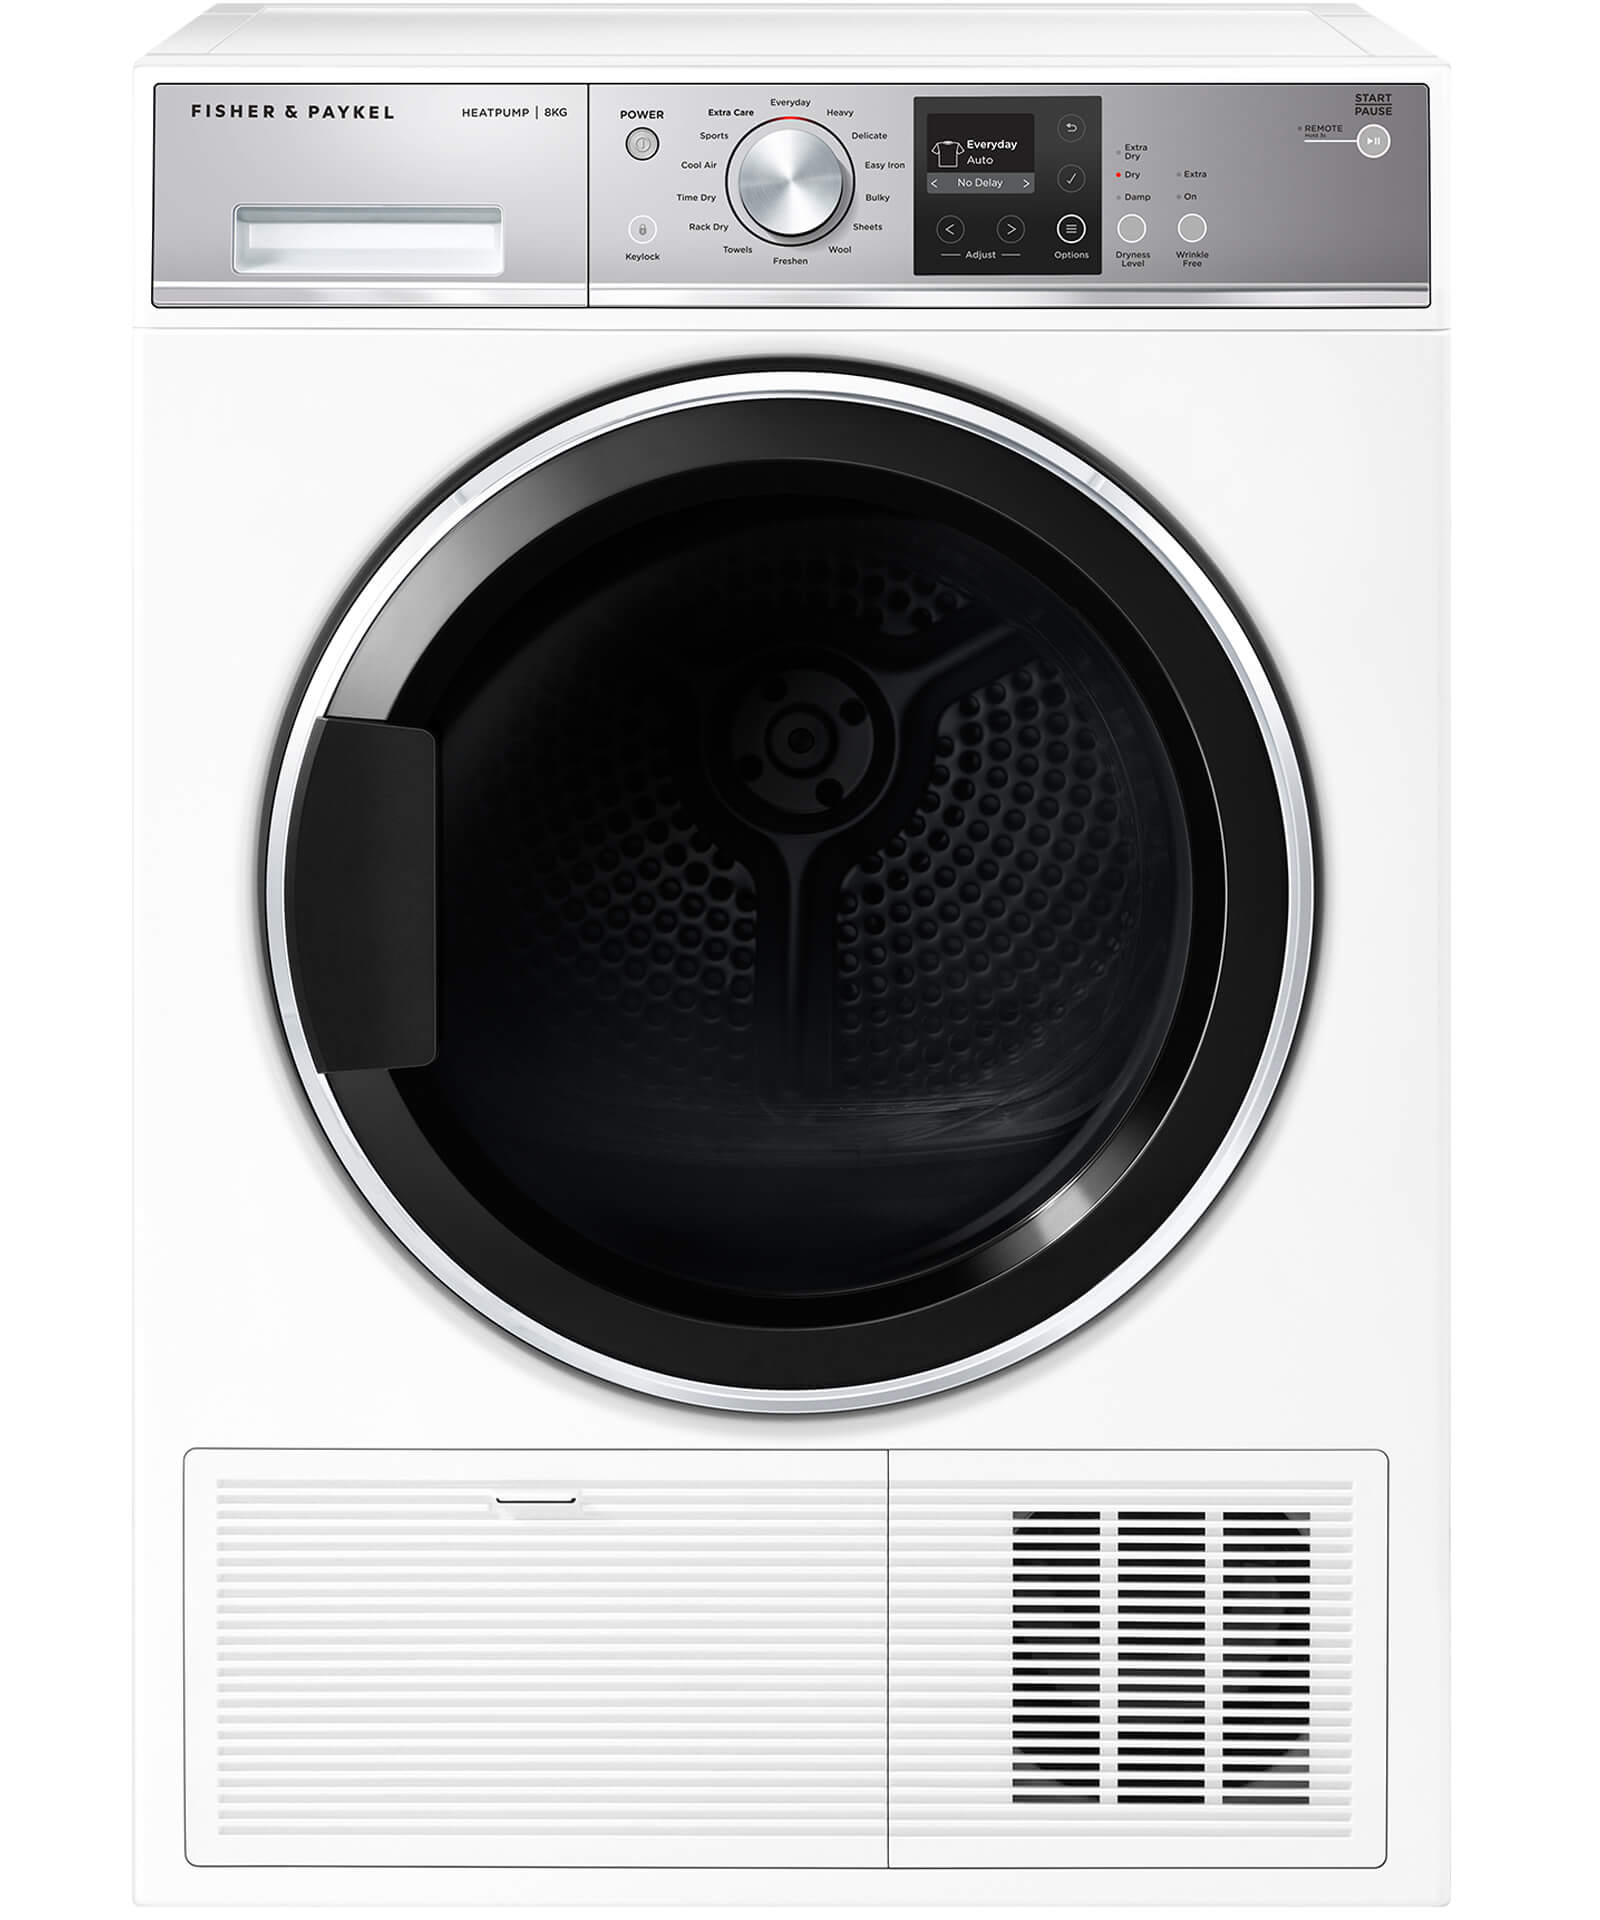 Fisher and paykel electric dryer